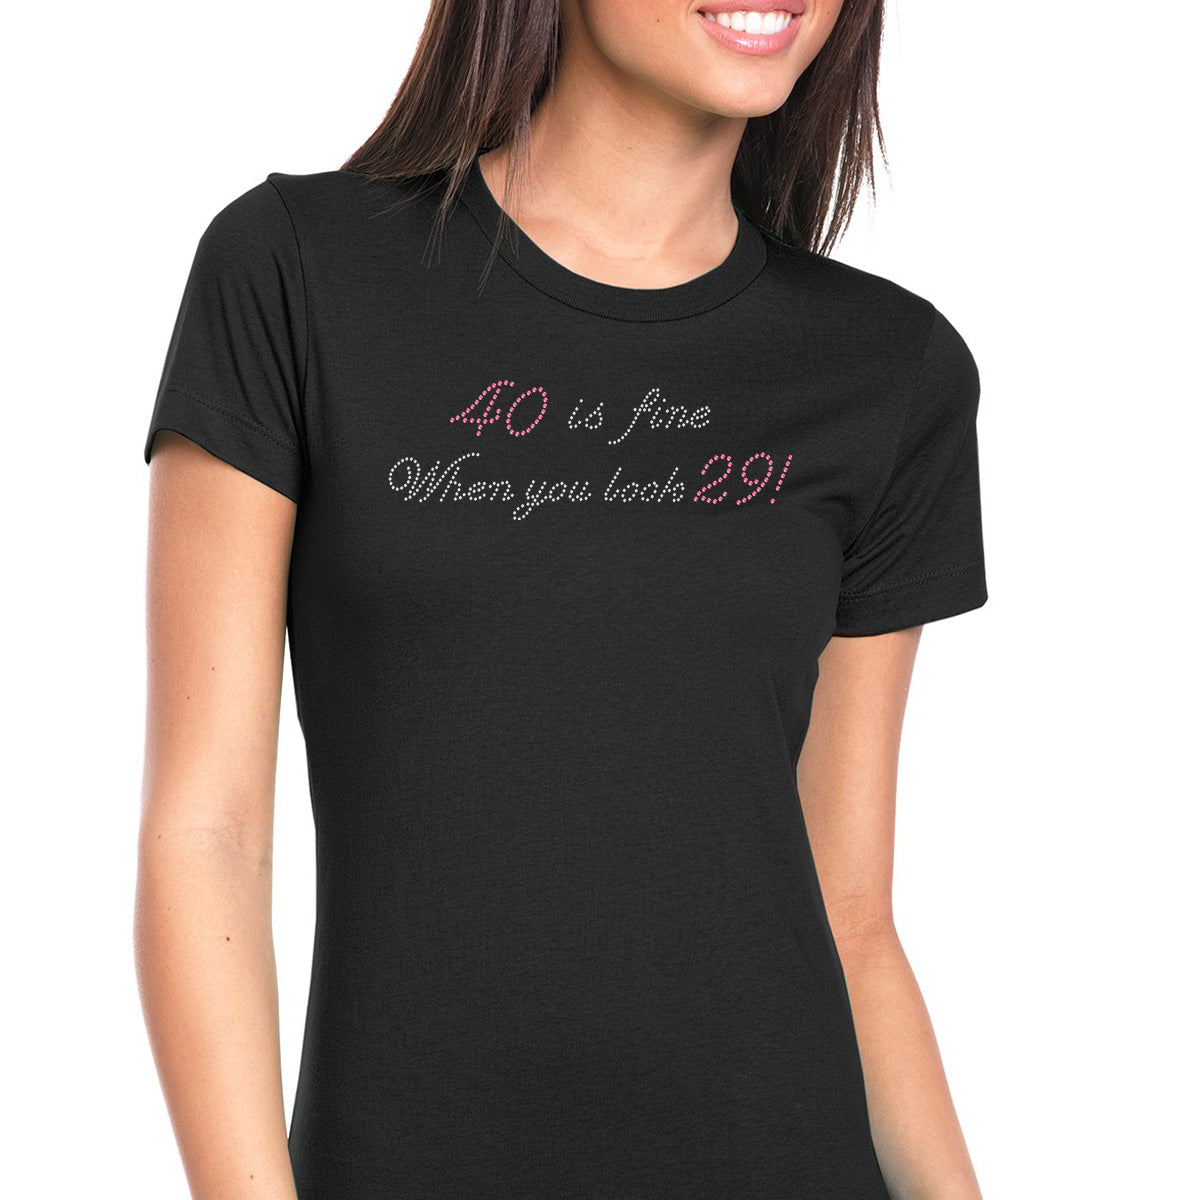 Womens T-Shirt Bling Black Fitted Tee 40 is Fine when you Look 29